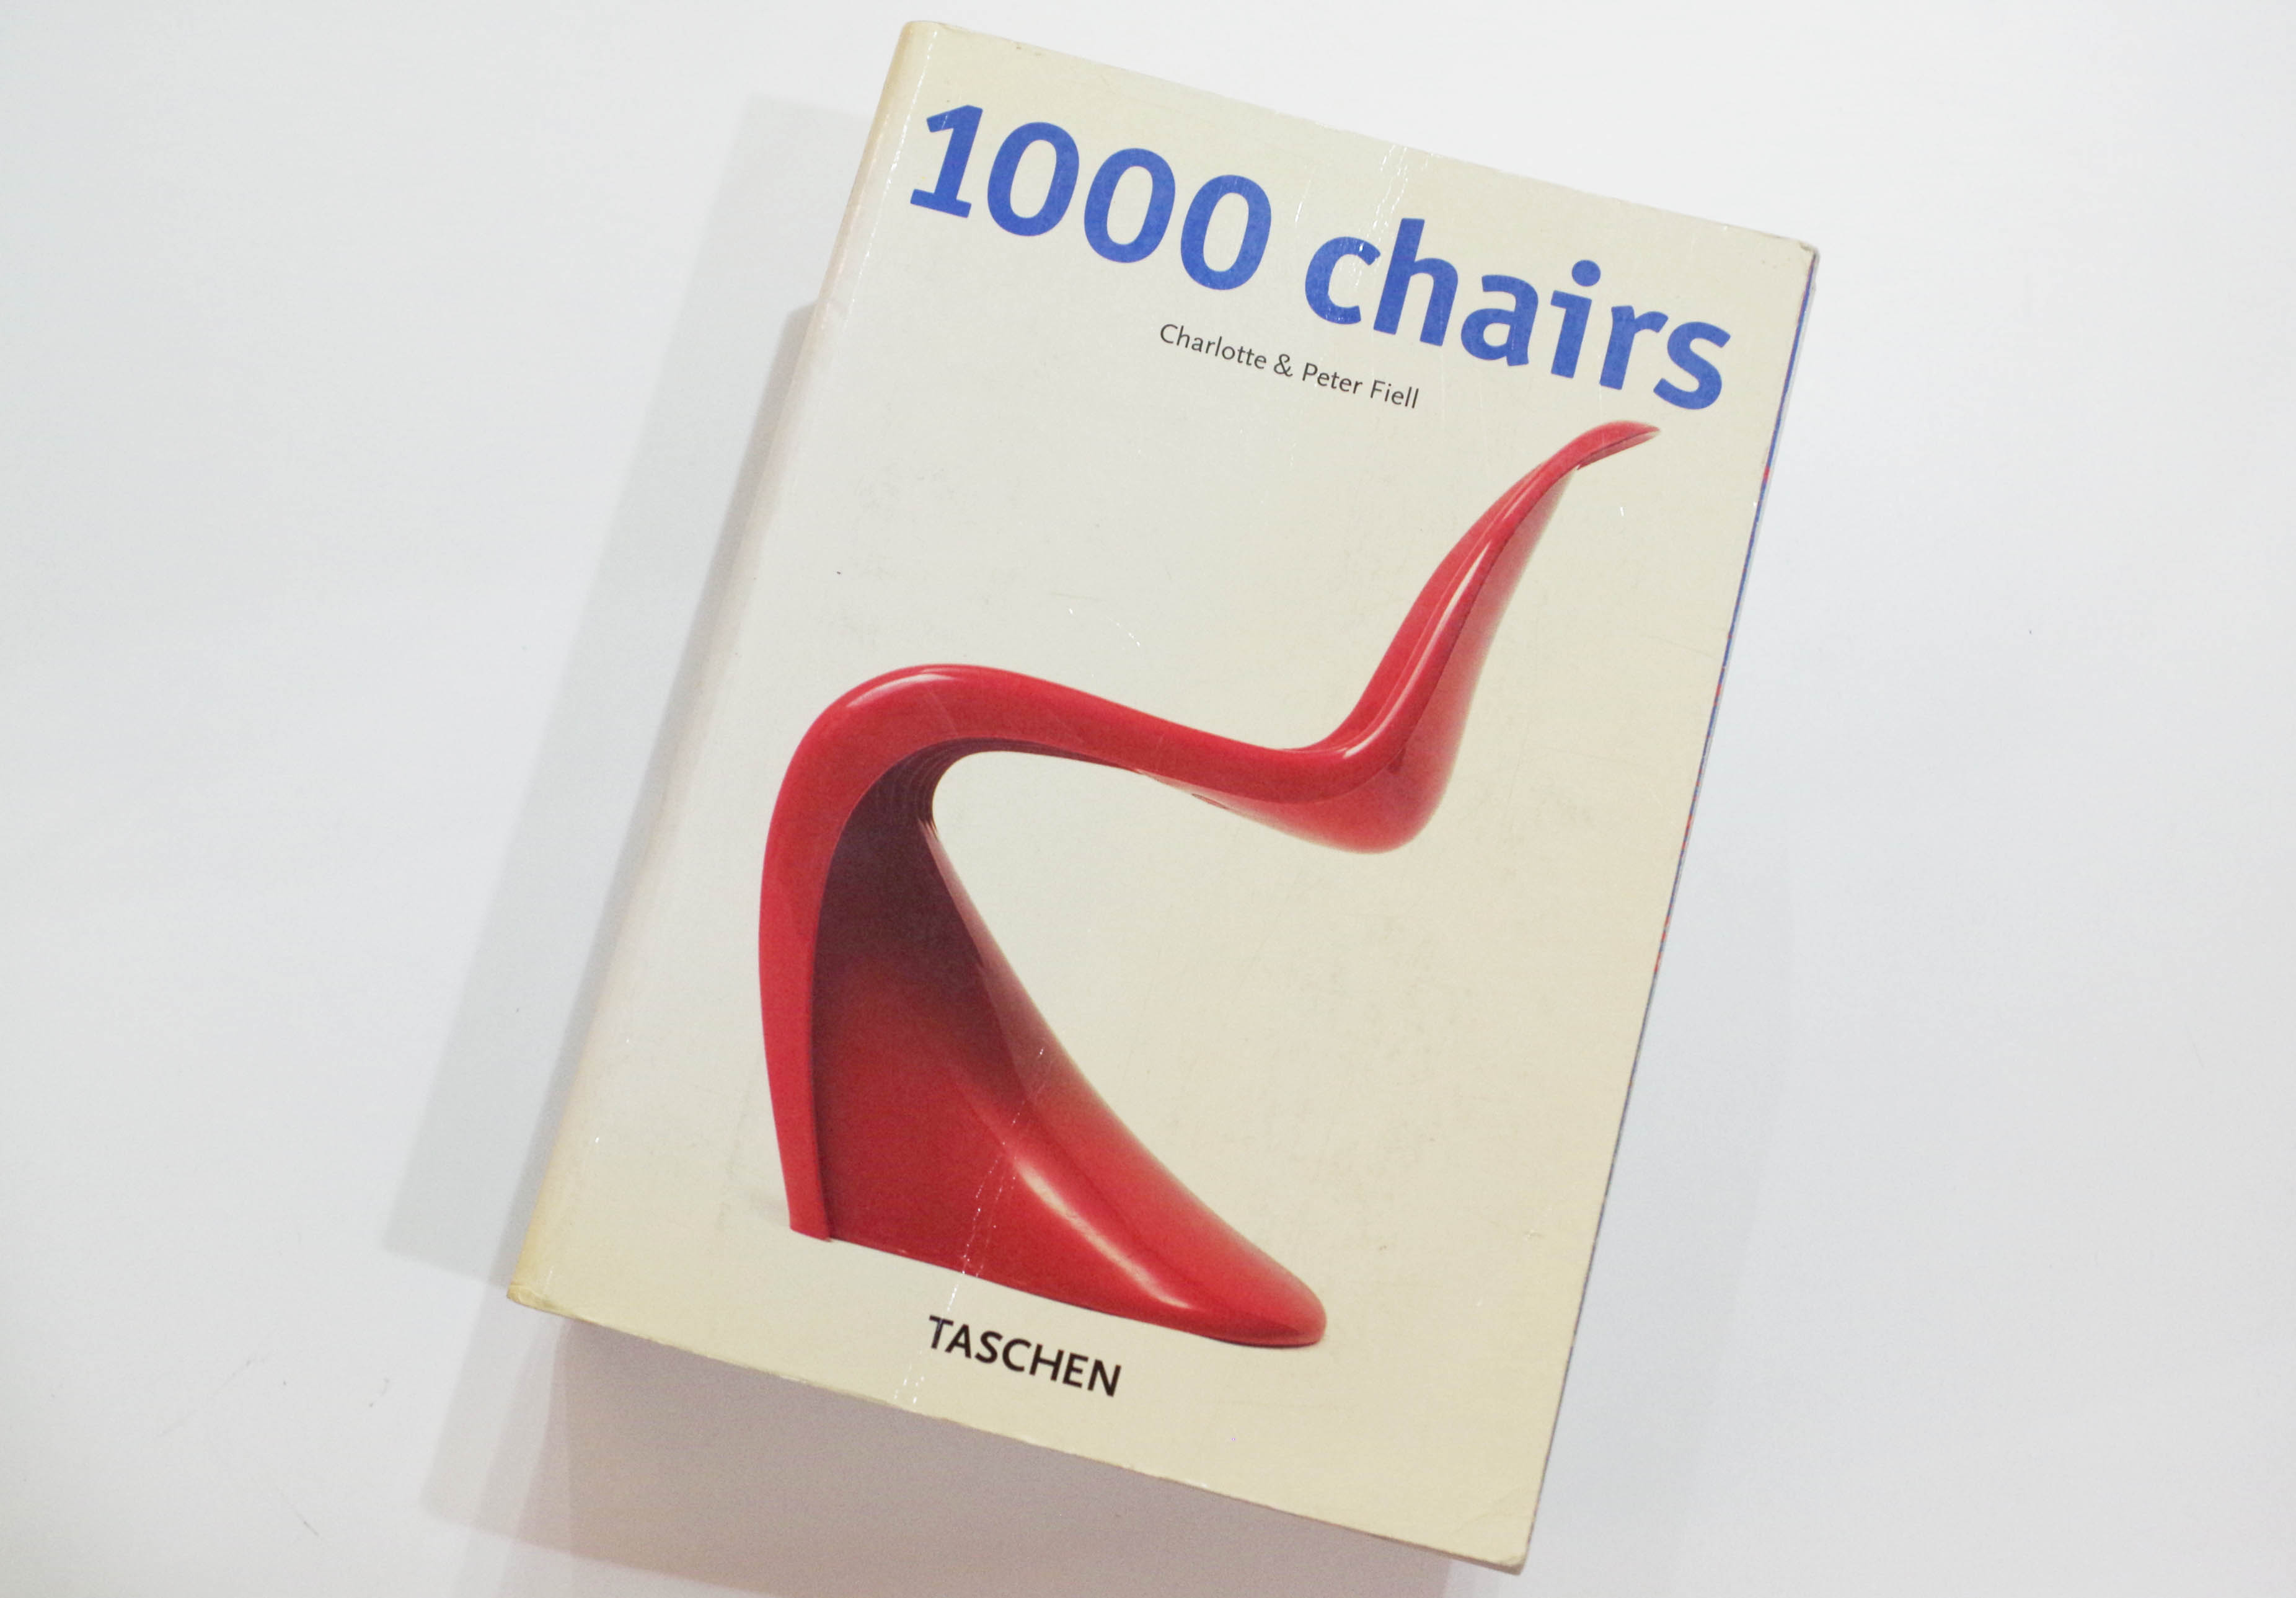 1000chairs